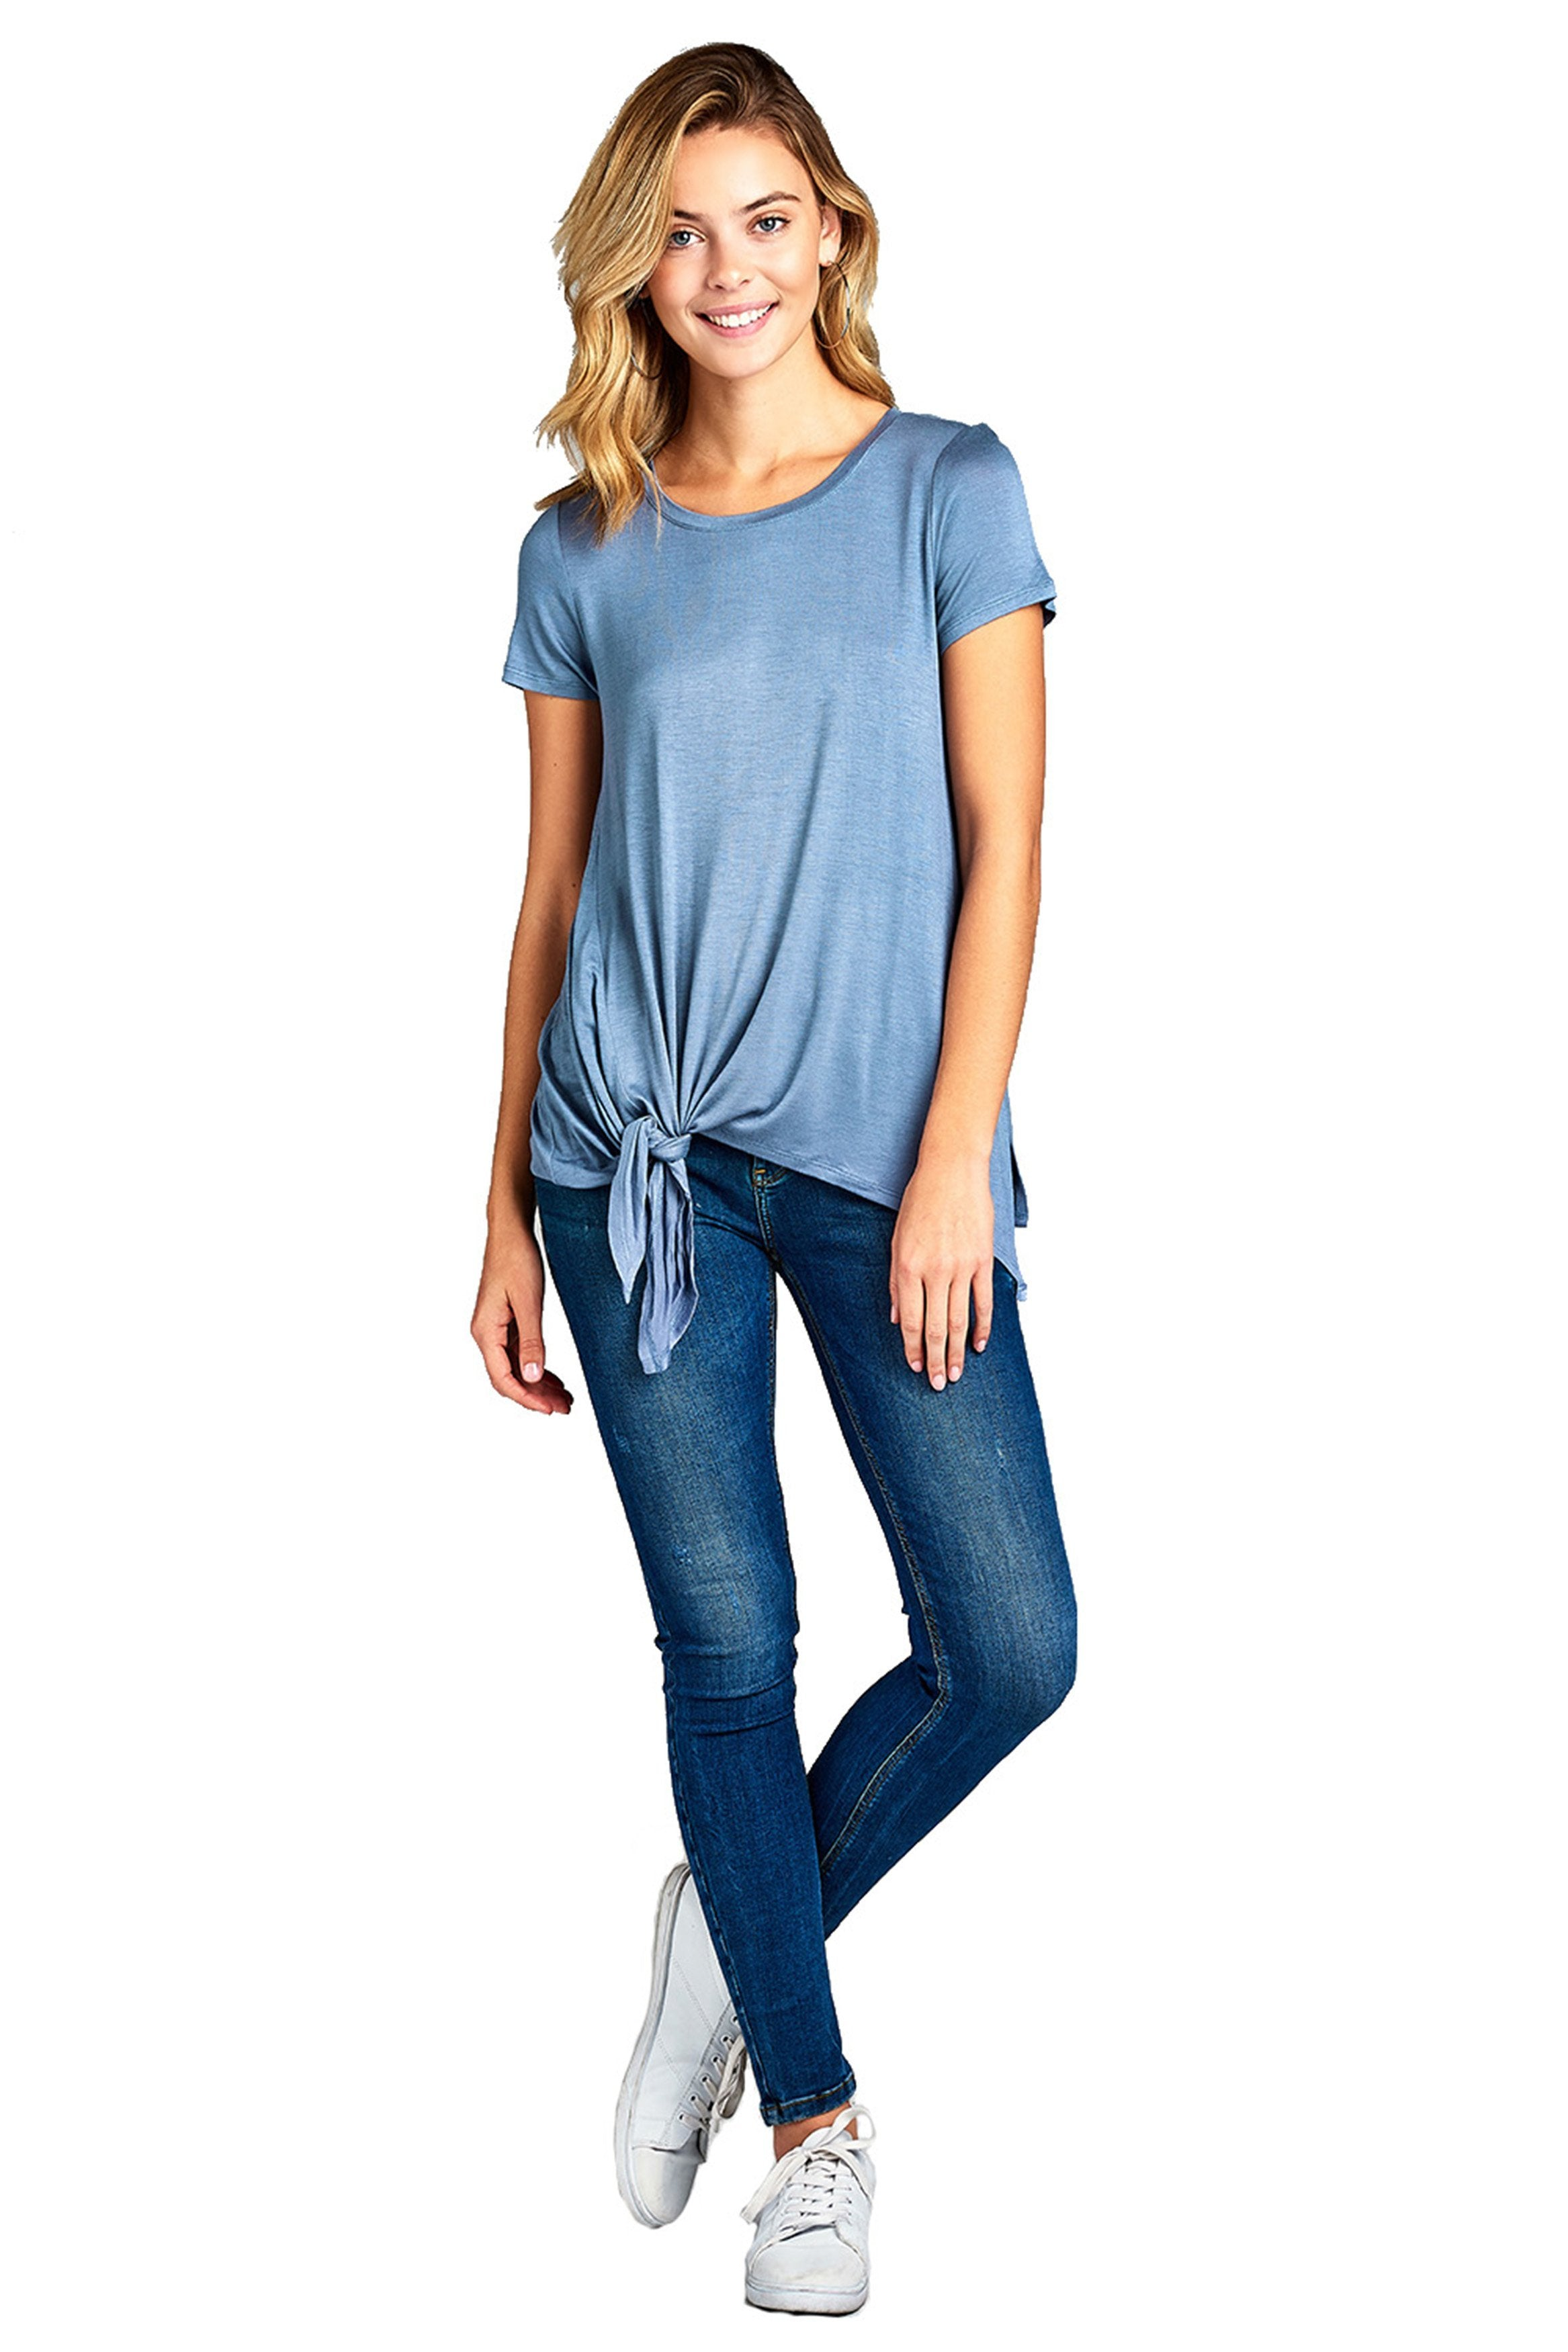 Short Sleeve Round Neck Side Knot Slit Solid Lightweight Loose Fit Casual Top